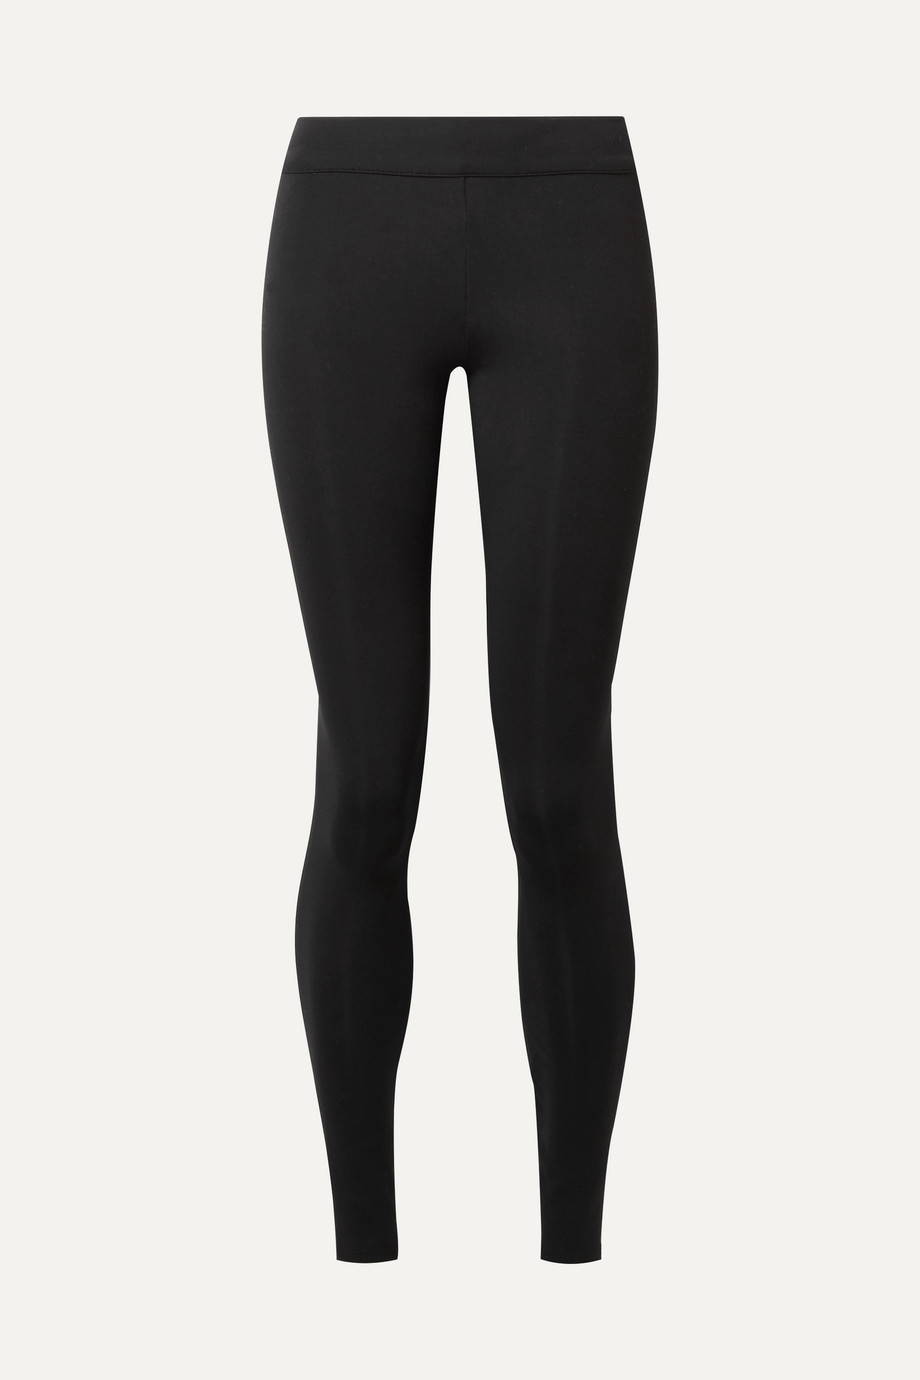 THE ROW Relma stretch-scuba leggings